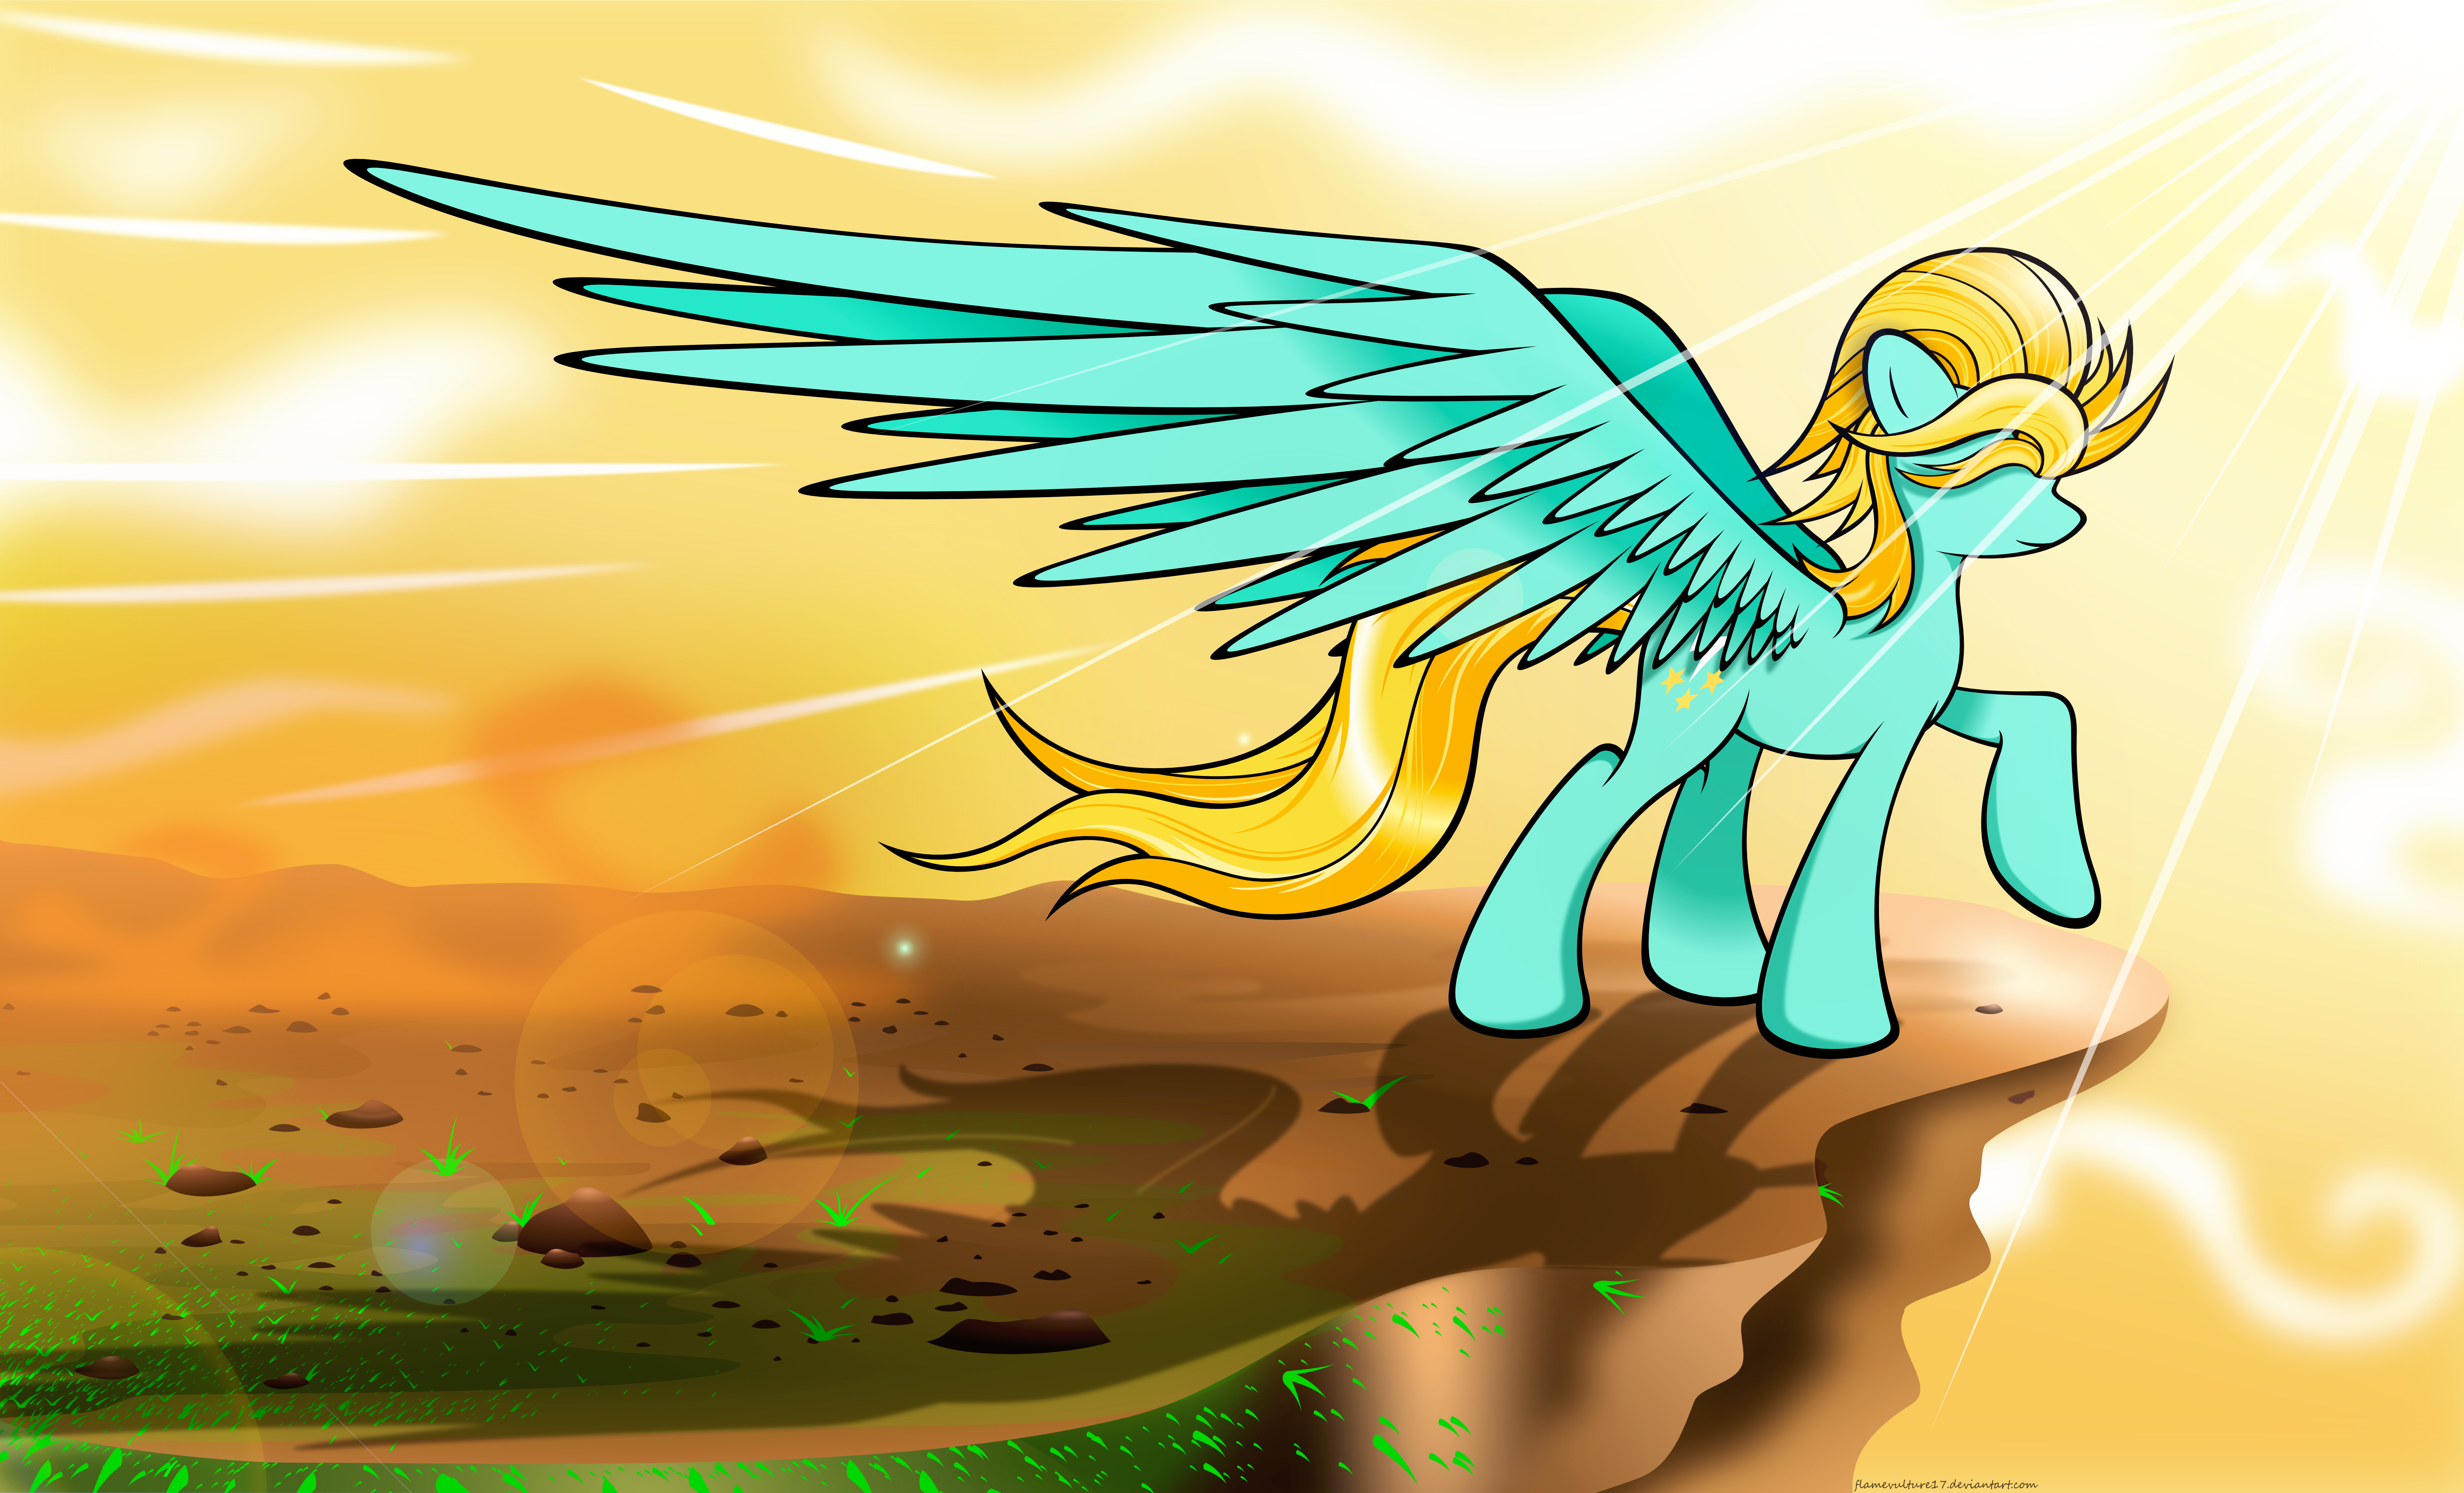 Dynamic Dust by flamevulture17